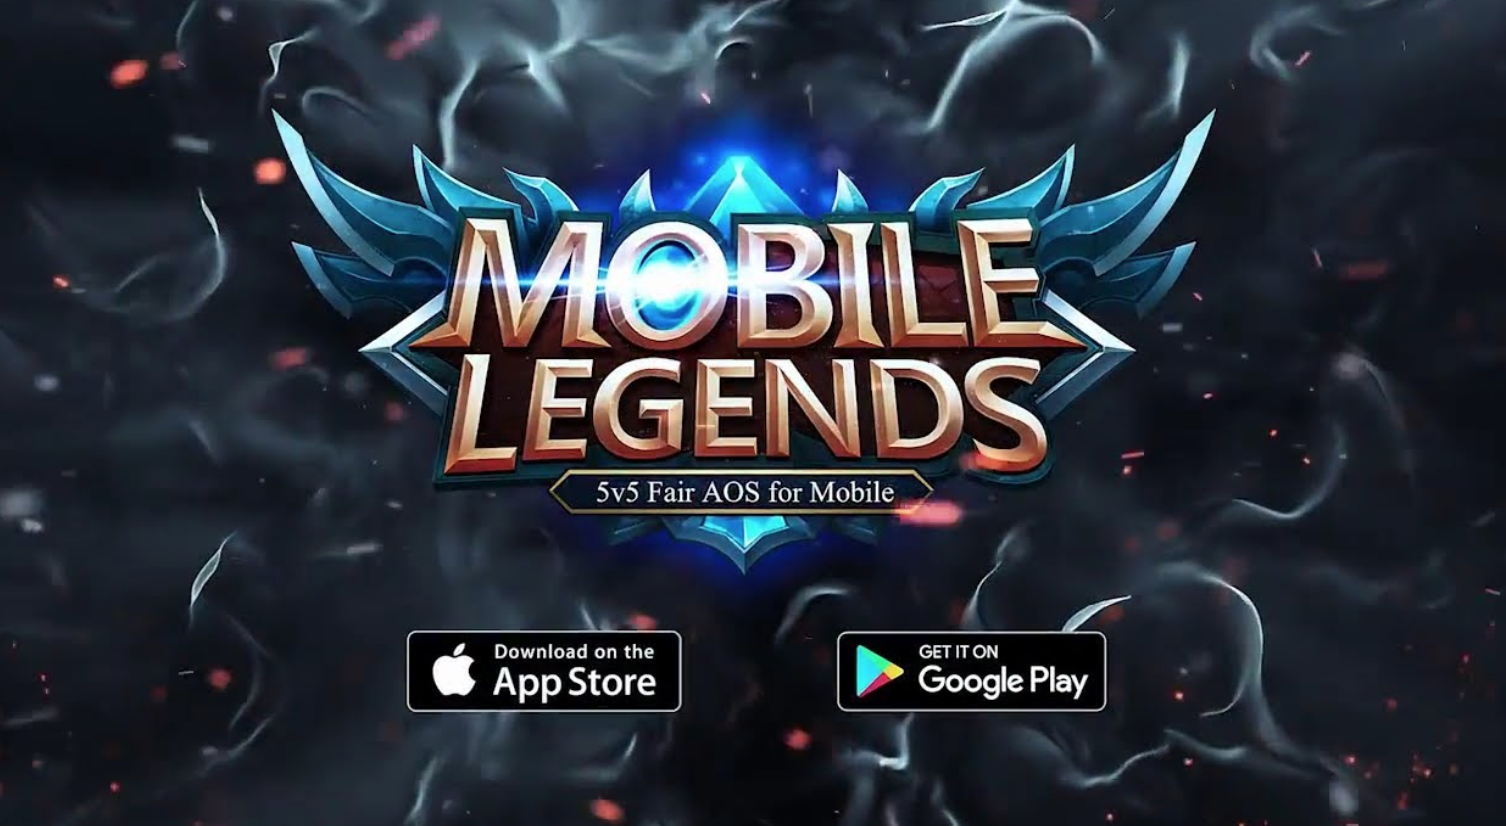 game multiplayer mobile legends